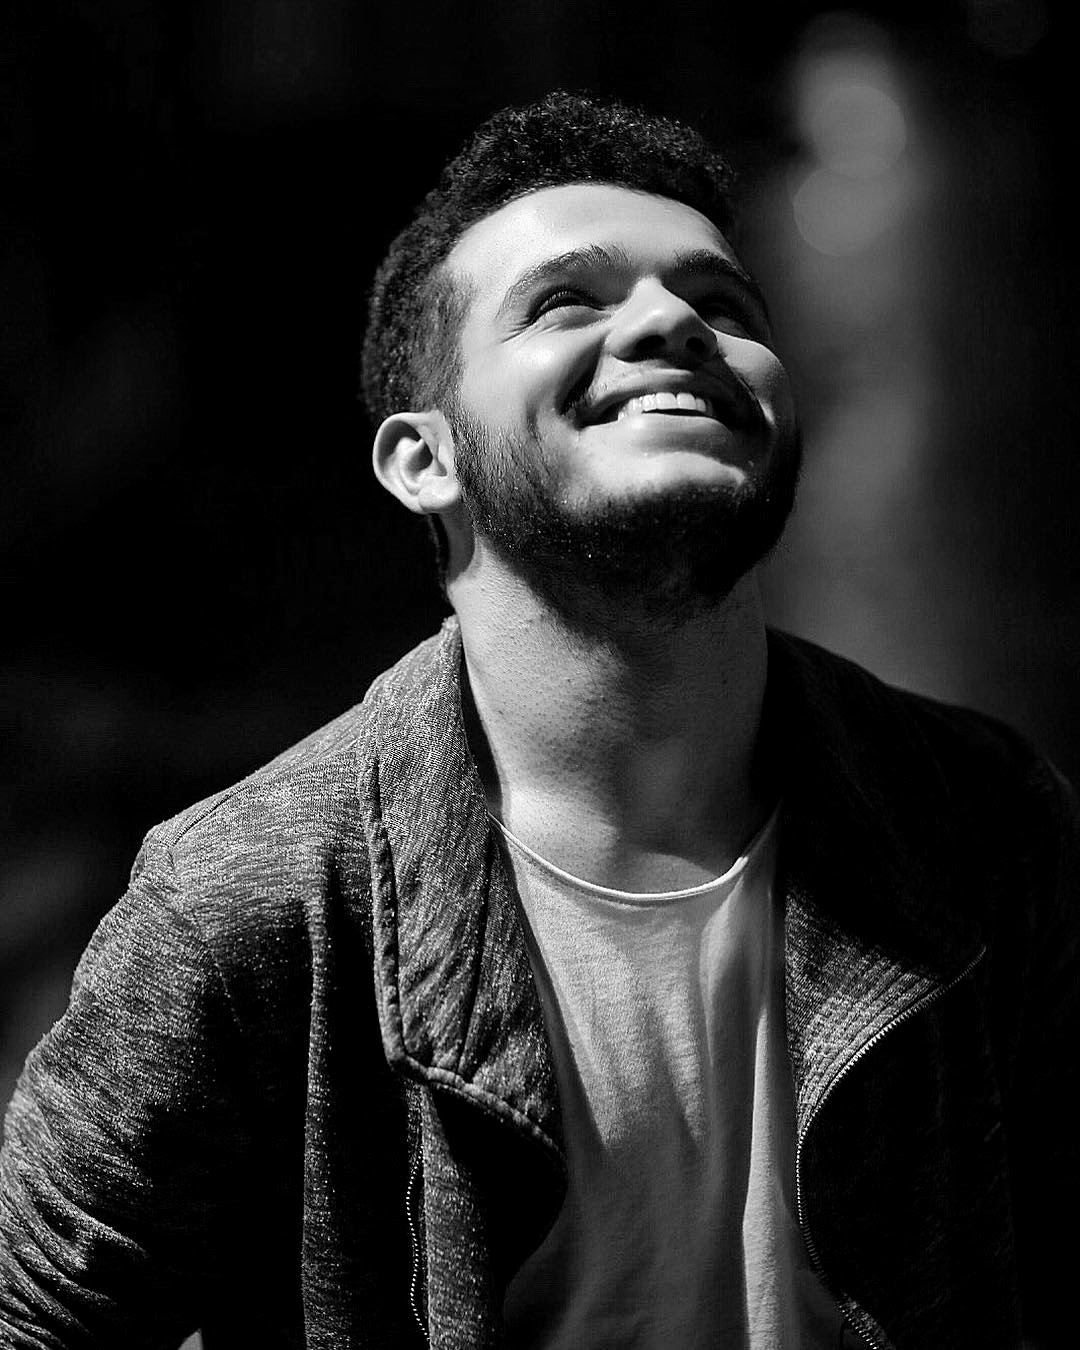 SmilinG is the way to be HAPPY, by Fatih POLAT.